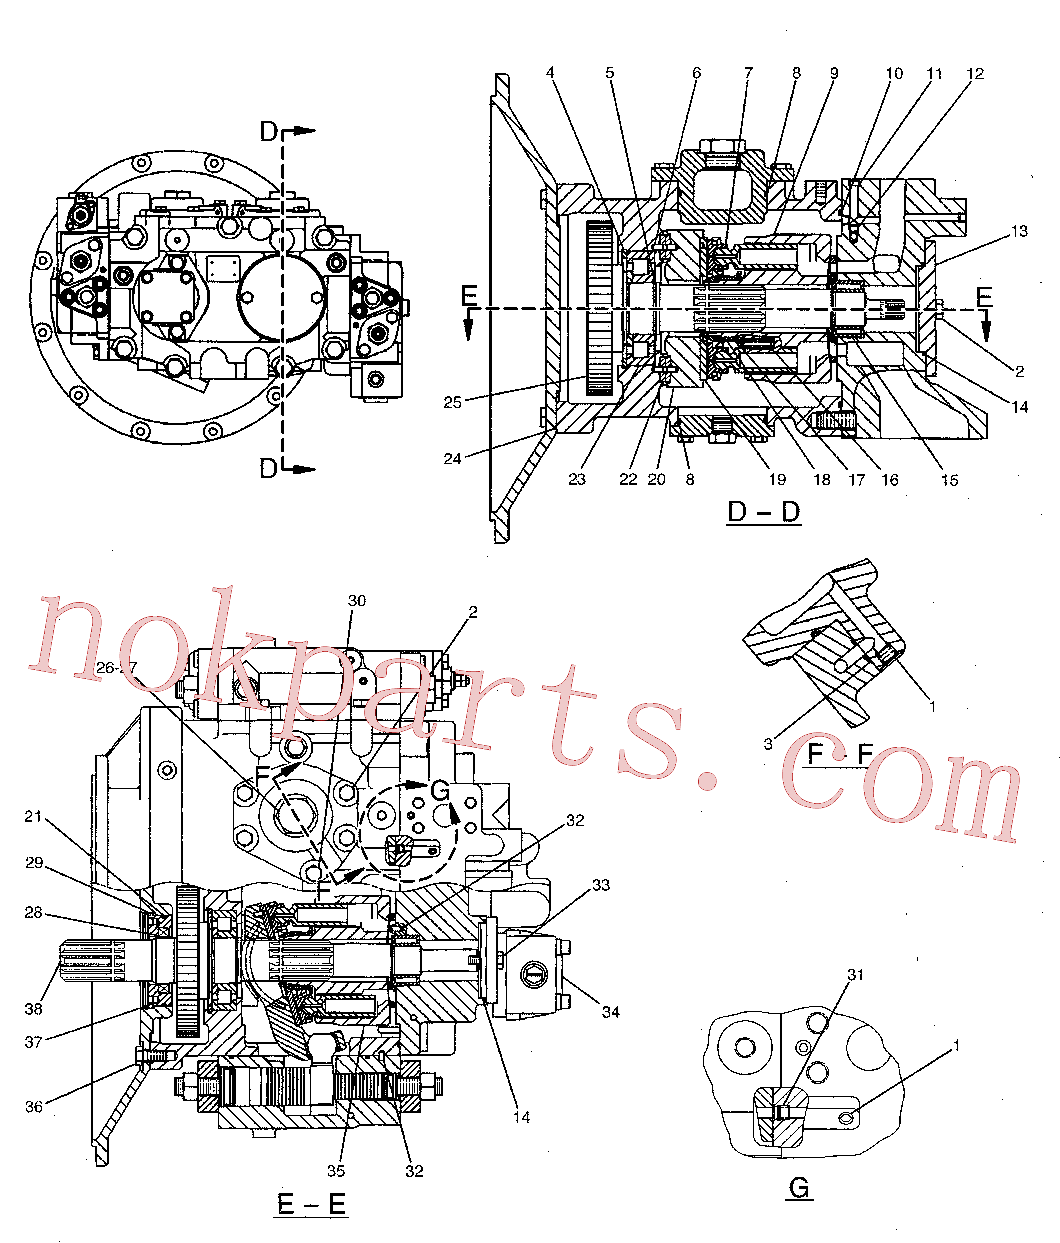 CAT 129-7979 for 325C L Excavator(EXC) hydraulic system 173-3381 Assembly